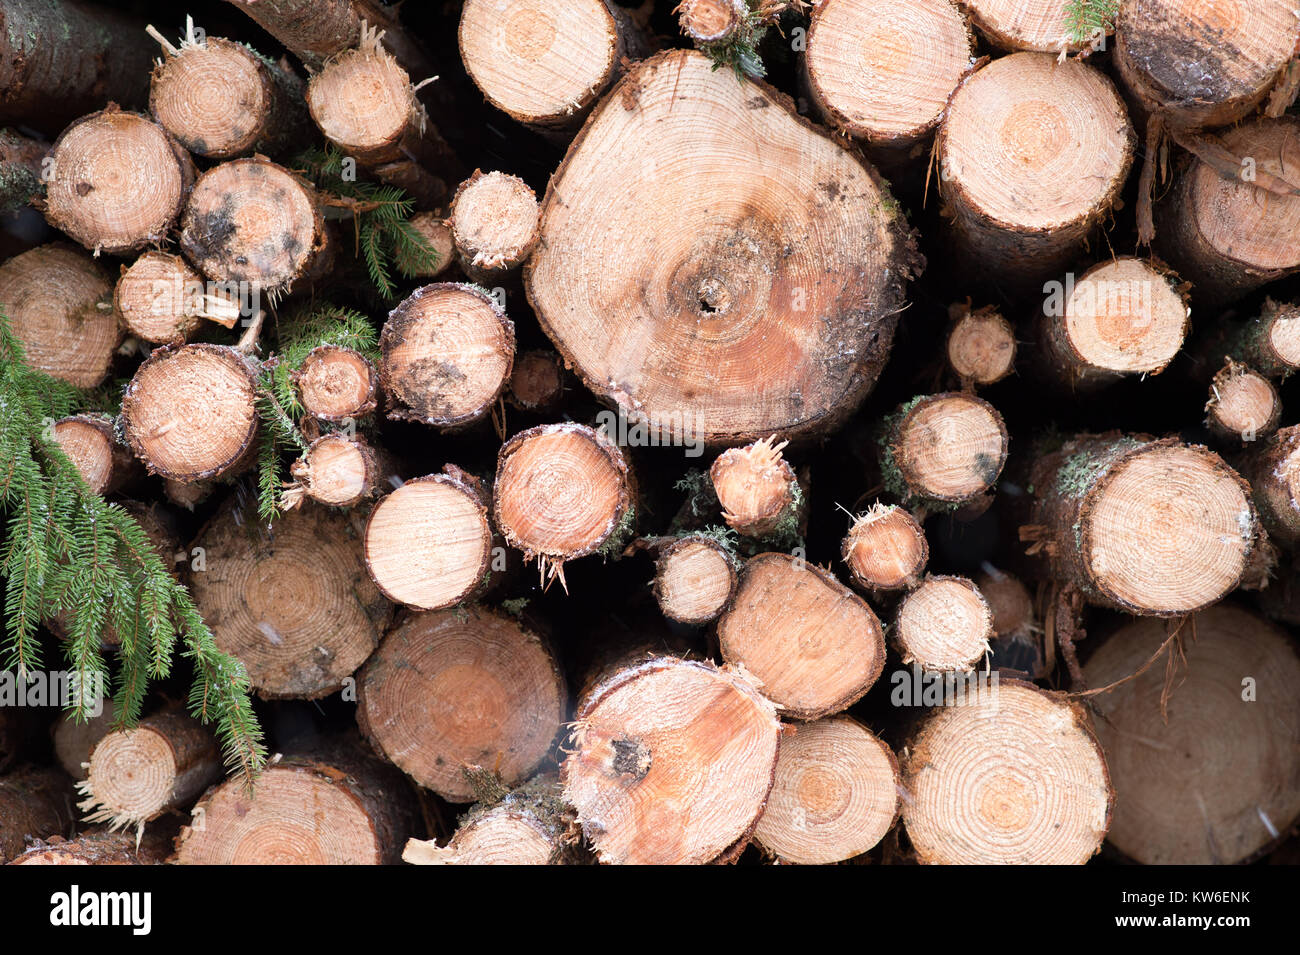 Harvested timber in a snowy Swedish forest. - Stock Image